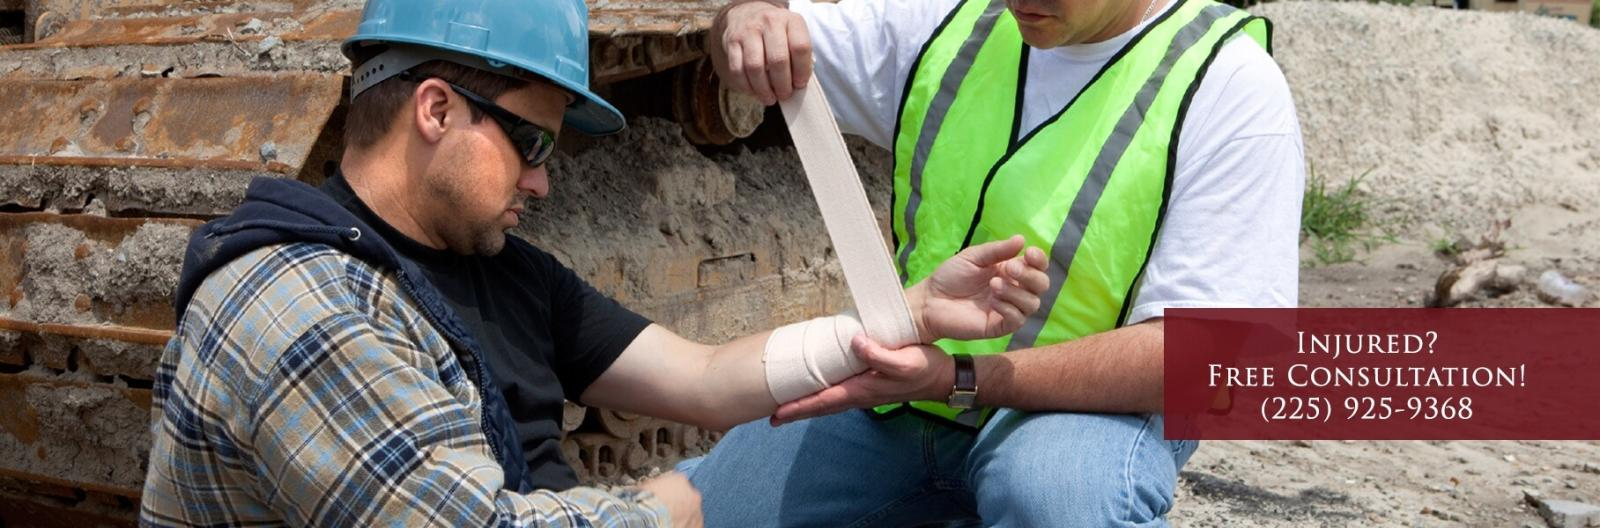 Industrial Accidents - Finch Davis - Baton Rouge Personal Injury Attorney